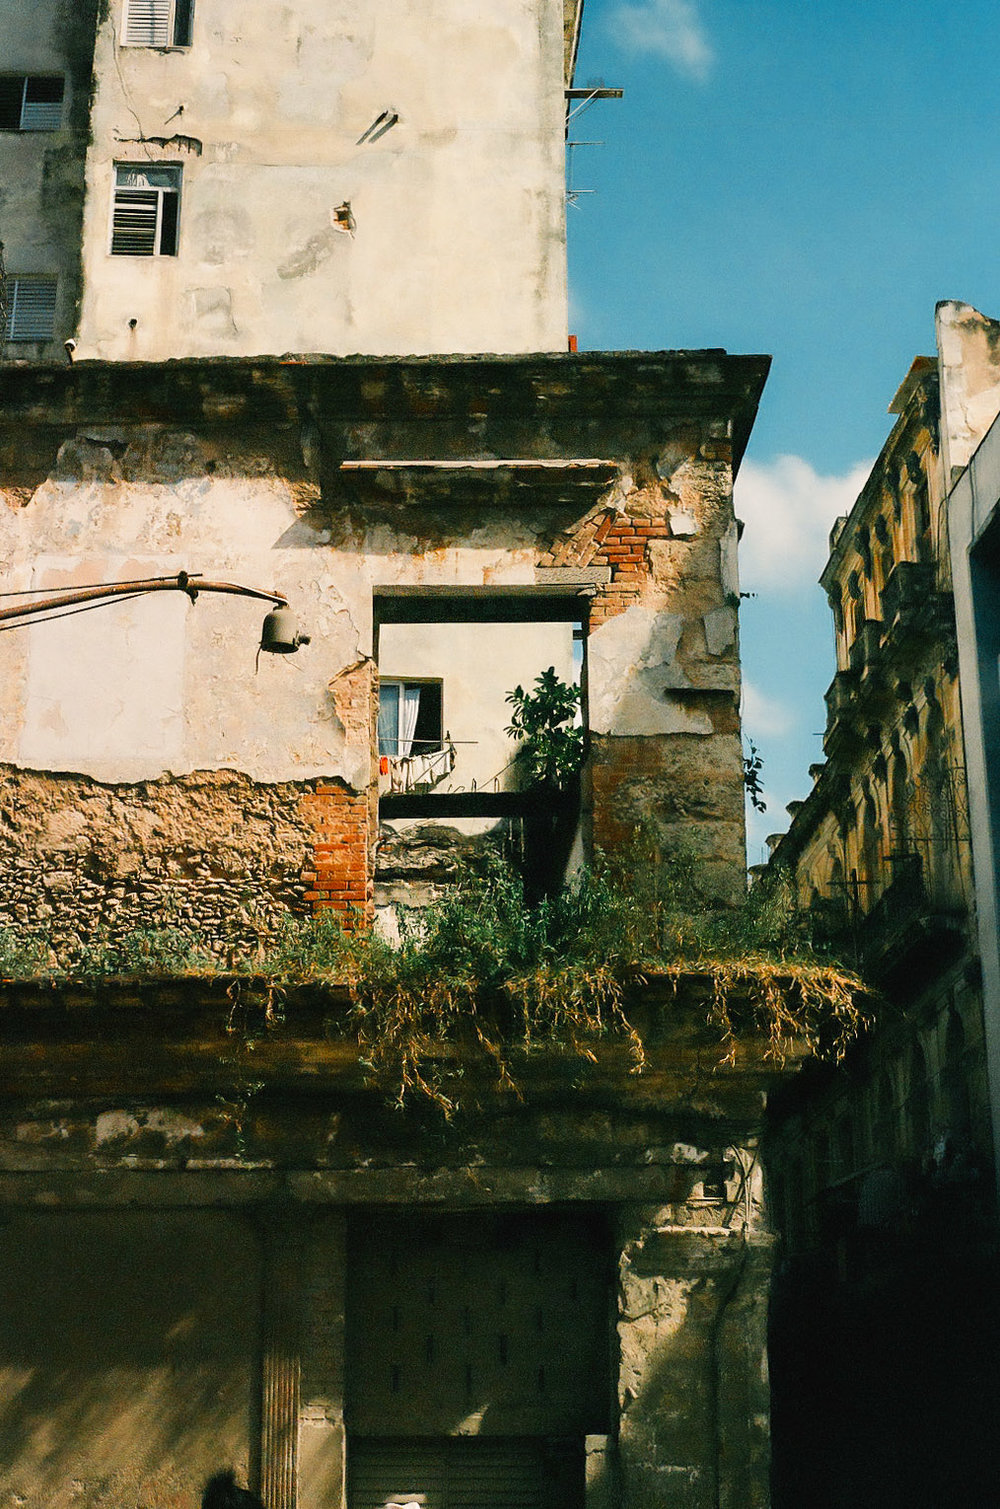 Gutted old building in Havana, Cuba, taken with 35mm camera film.